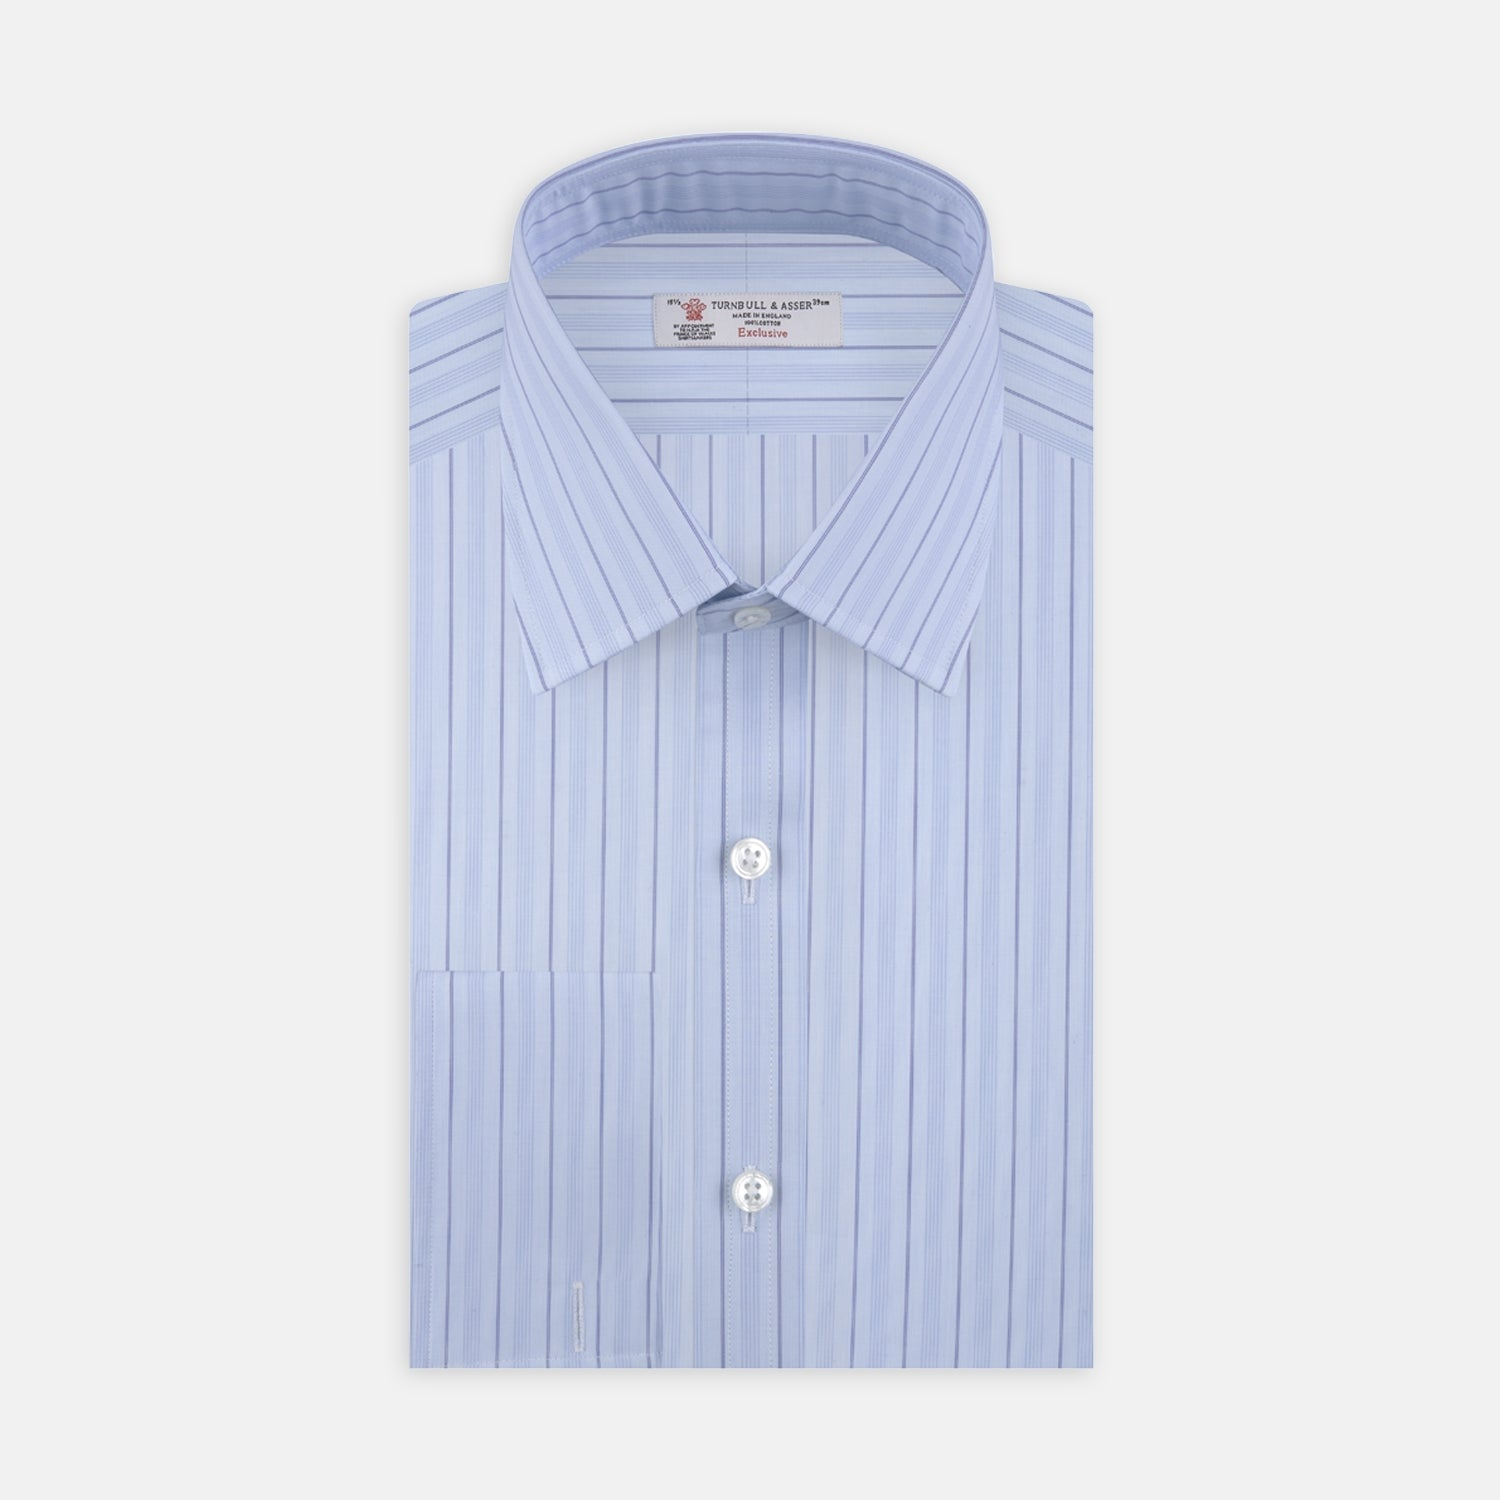 Blue Mixed Stripe Shirt with T&A Collar and Double Cuffs